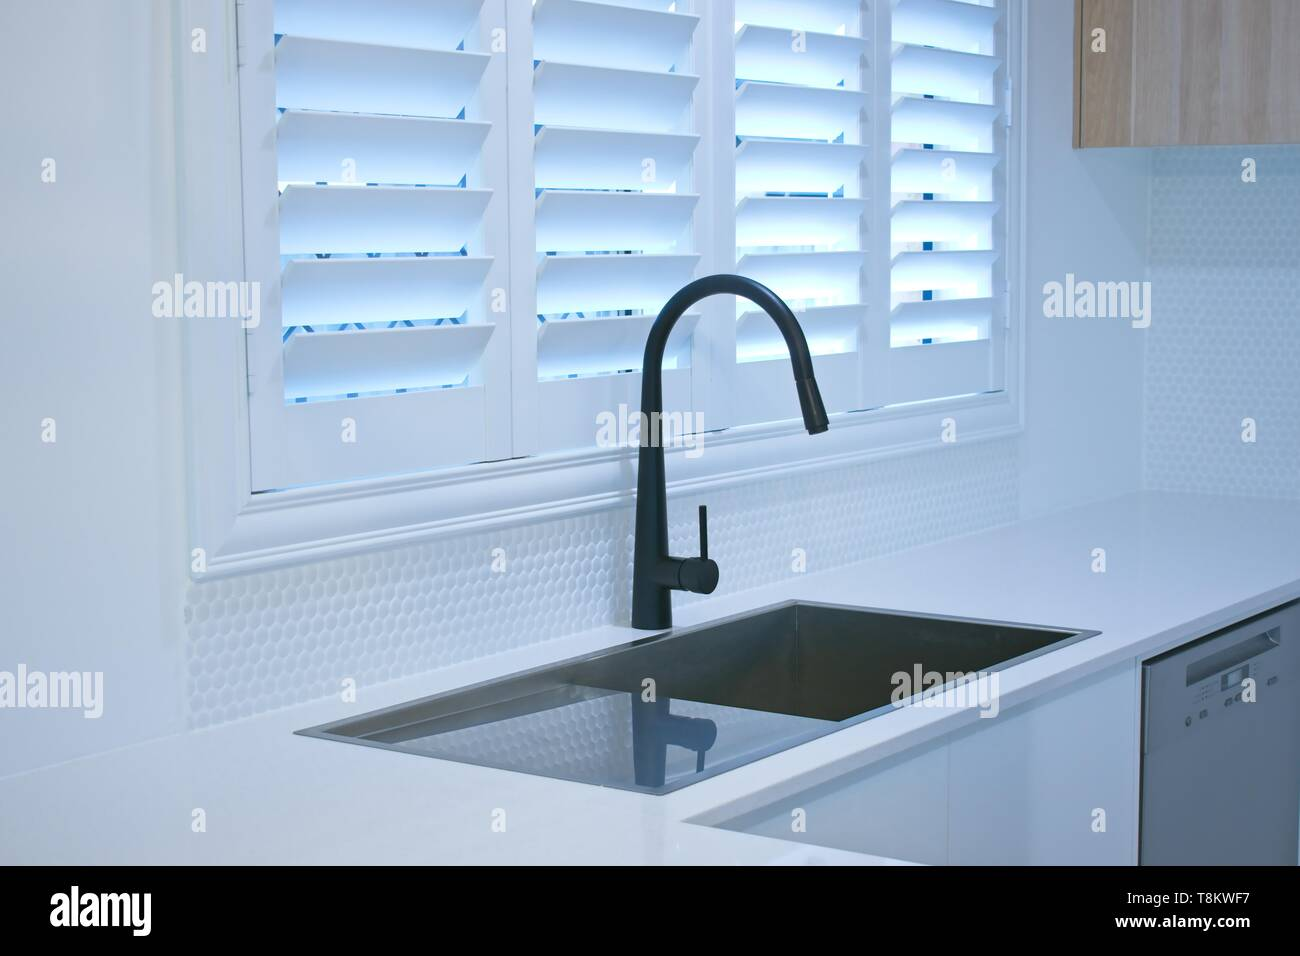 Open Plantation Shutters And Black Kitchen Sink Mixer Tap Stock Photo Alamy